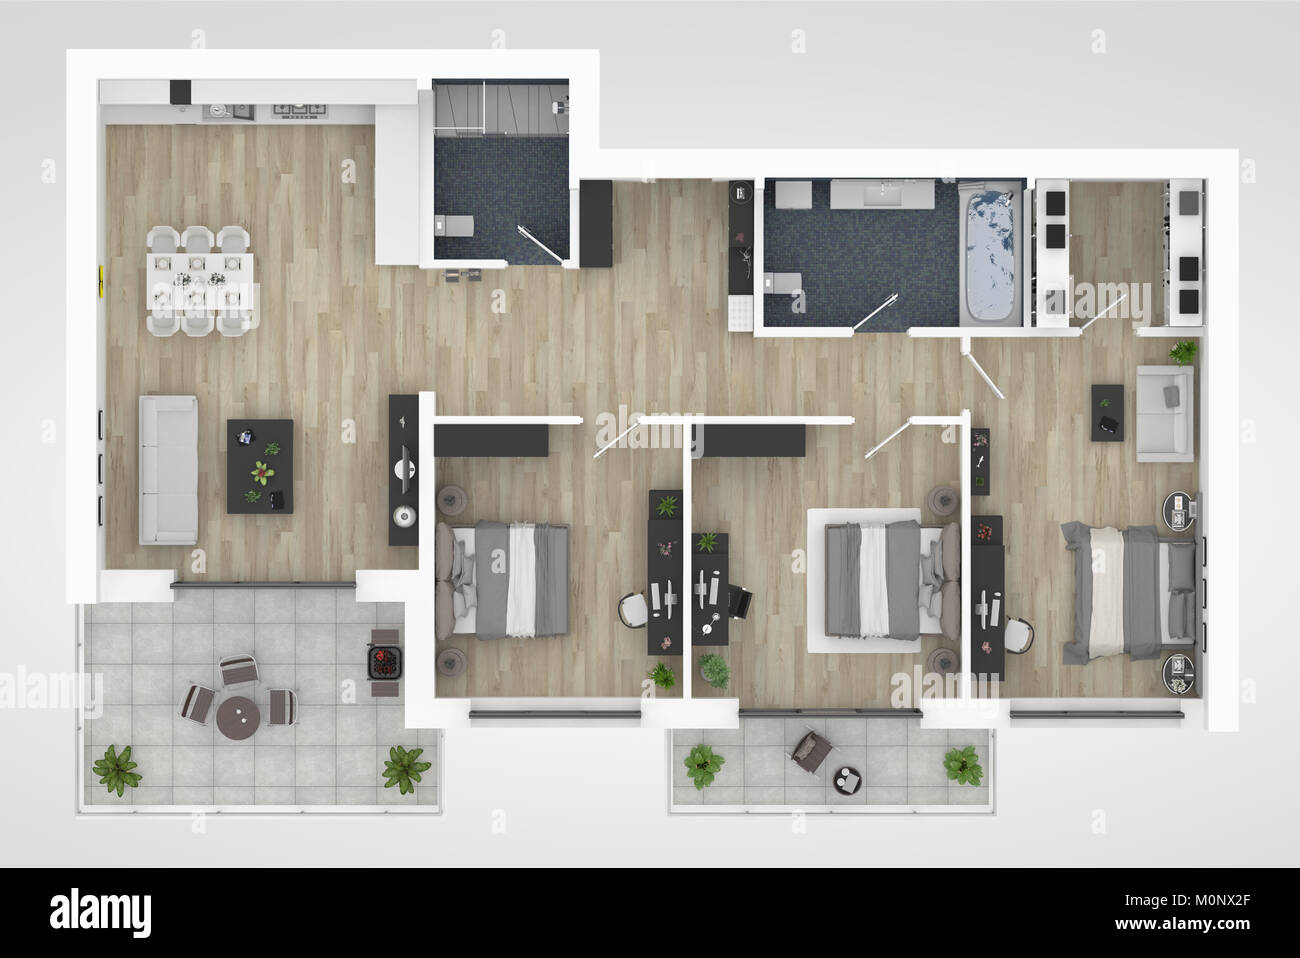 Floor Plan Of A House Top View 3d Illustration Open Concept Living Stock Photo Alamy